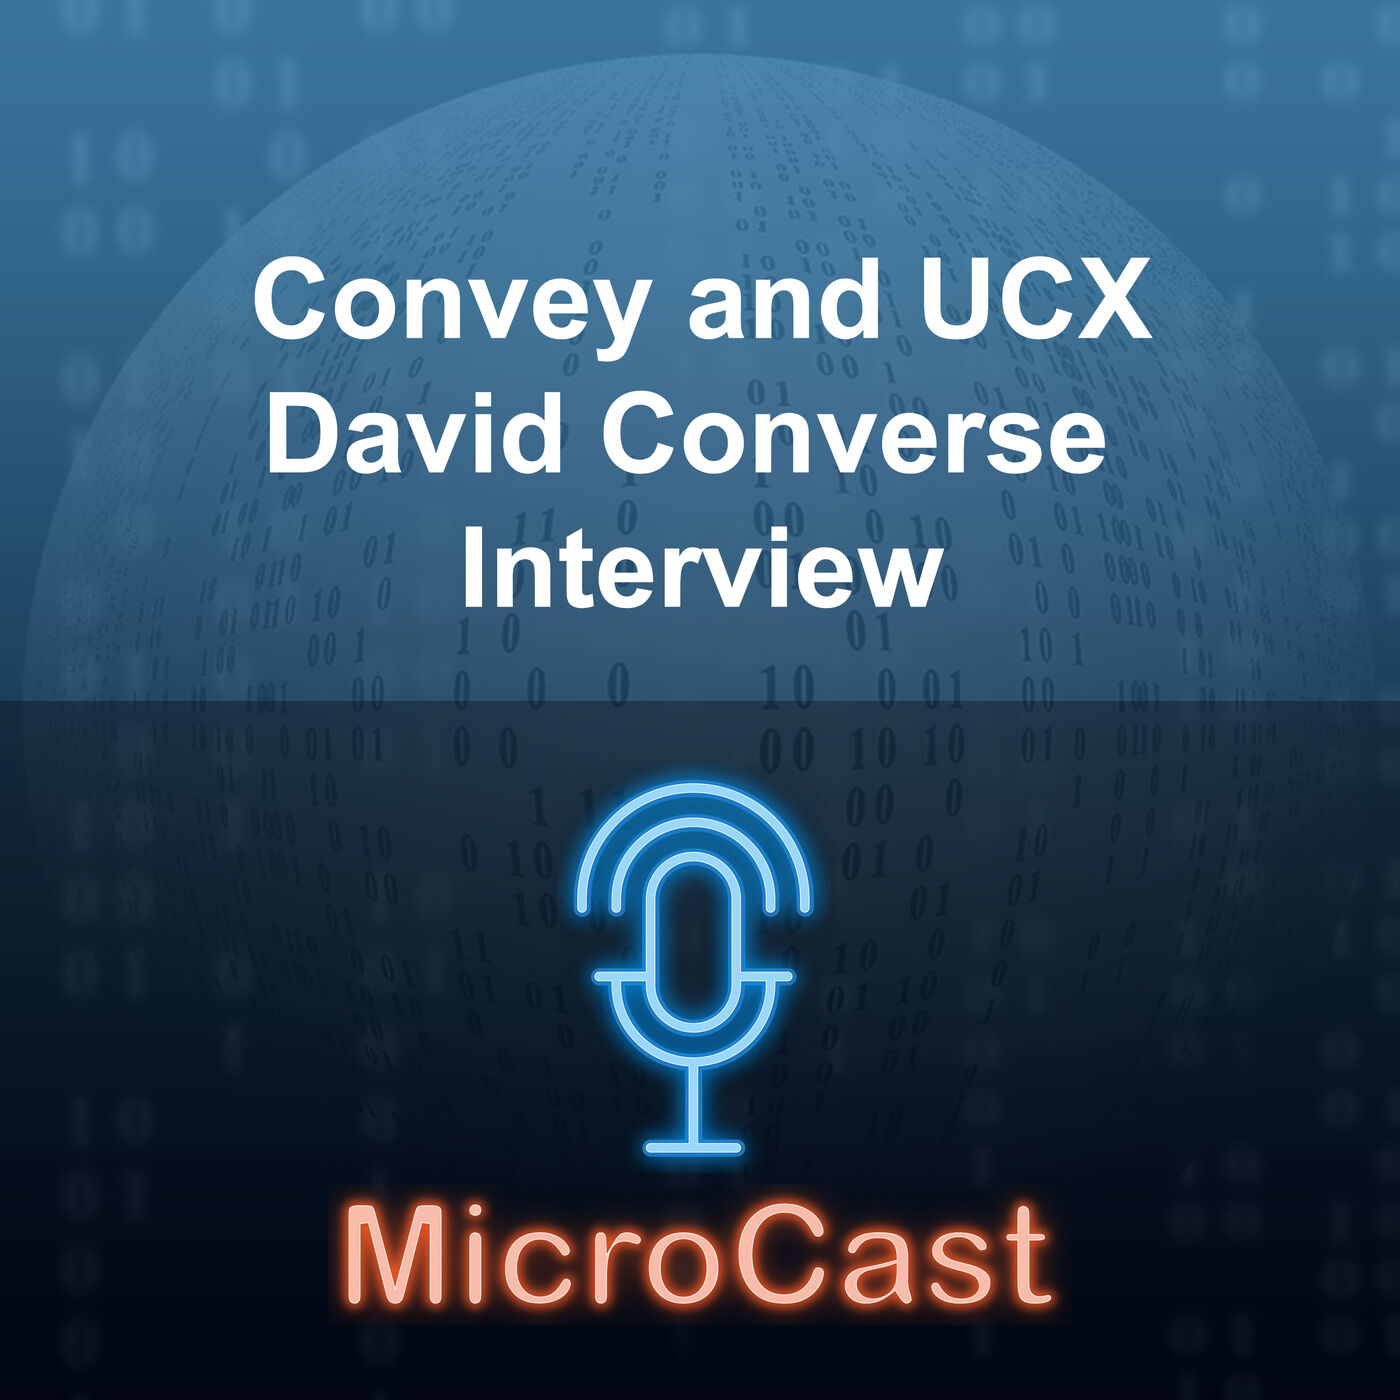 Convey and UCX - David Converse Interview